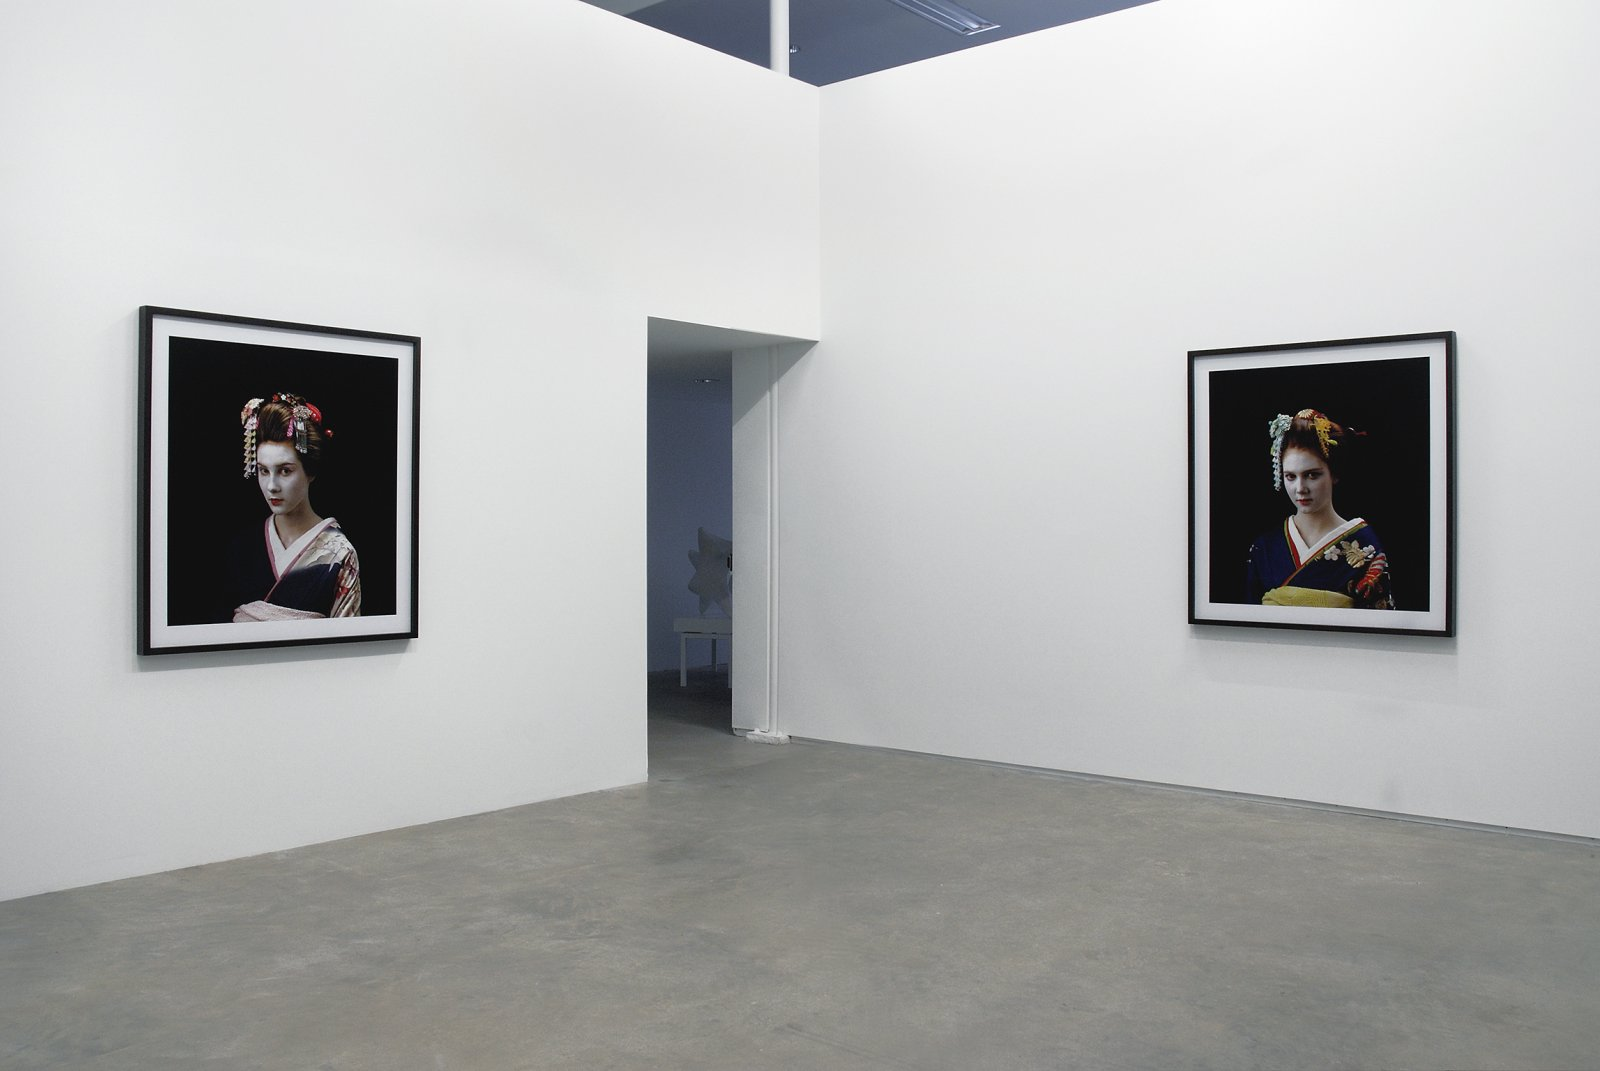 ​Ron Terada, installation view, Catriona Jeffries, 2008 by Ron Terada